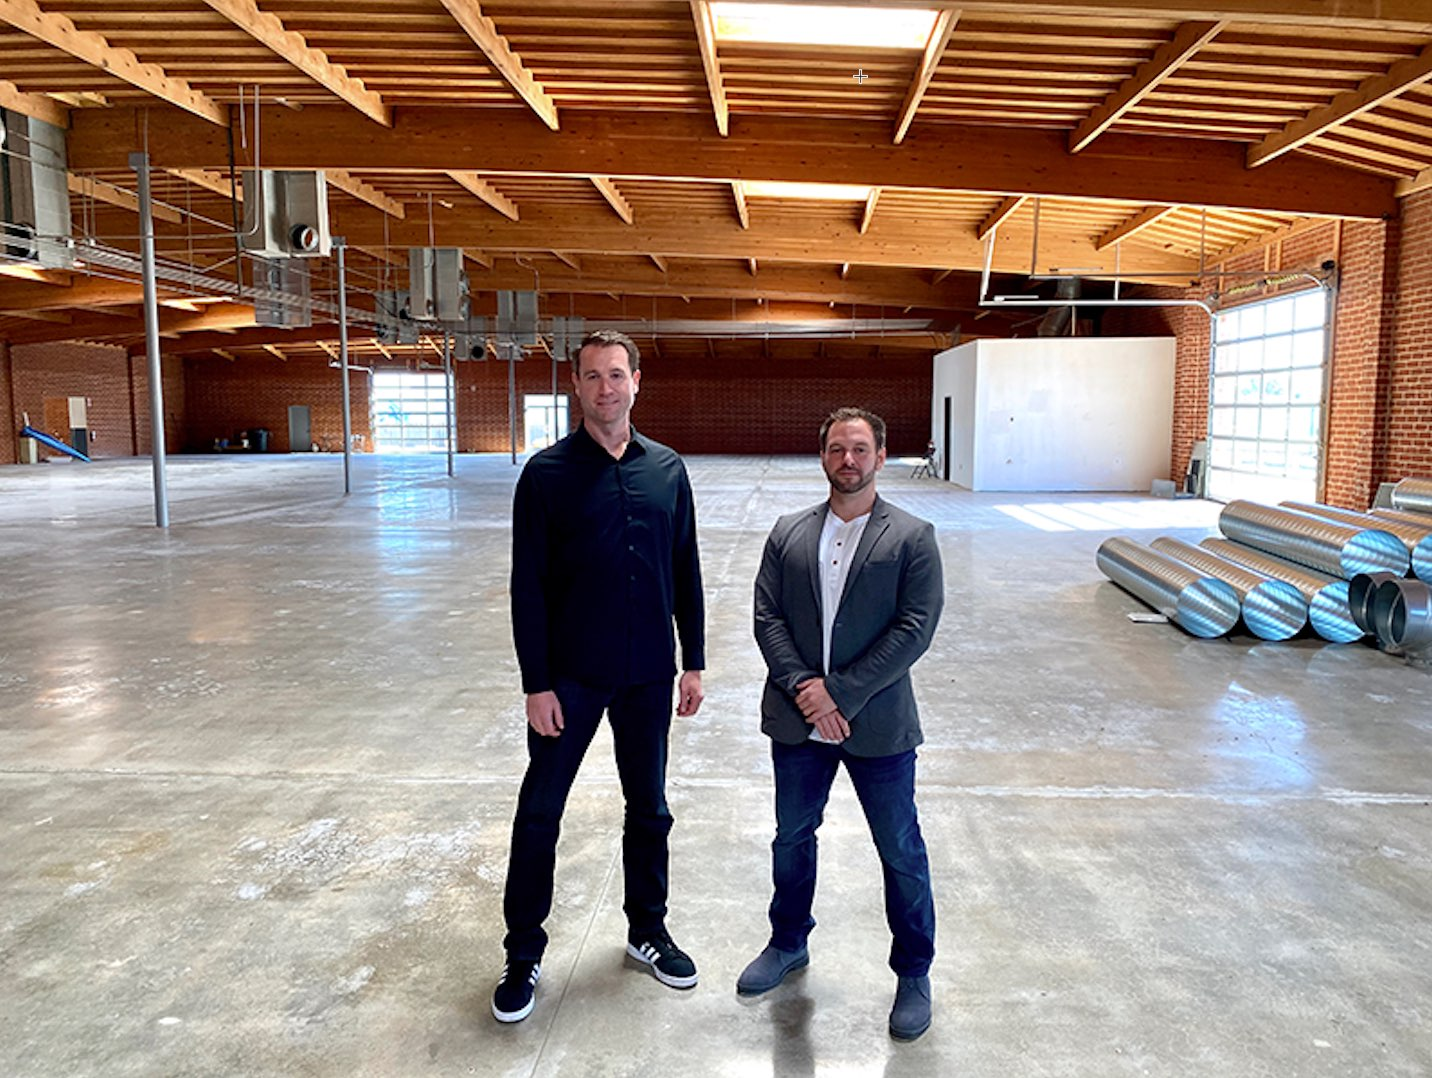 Nerd Street Gamers To Open Largest Public Esports Facility on the West Coast